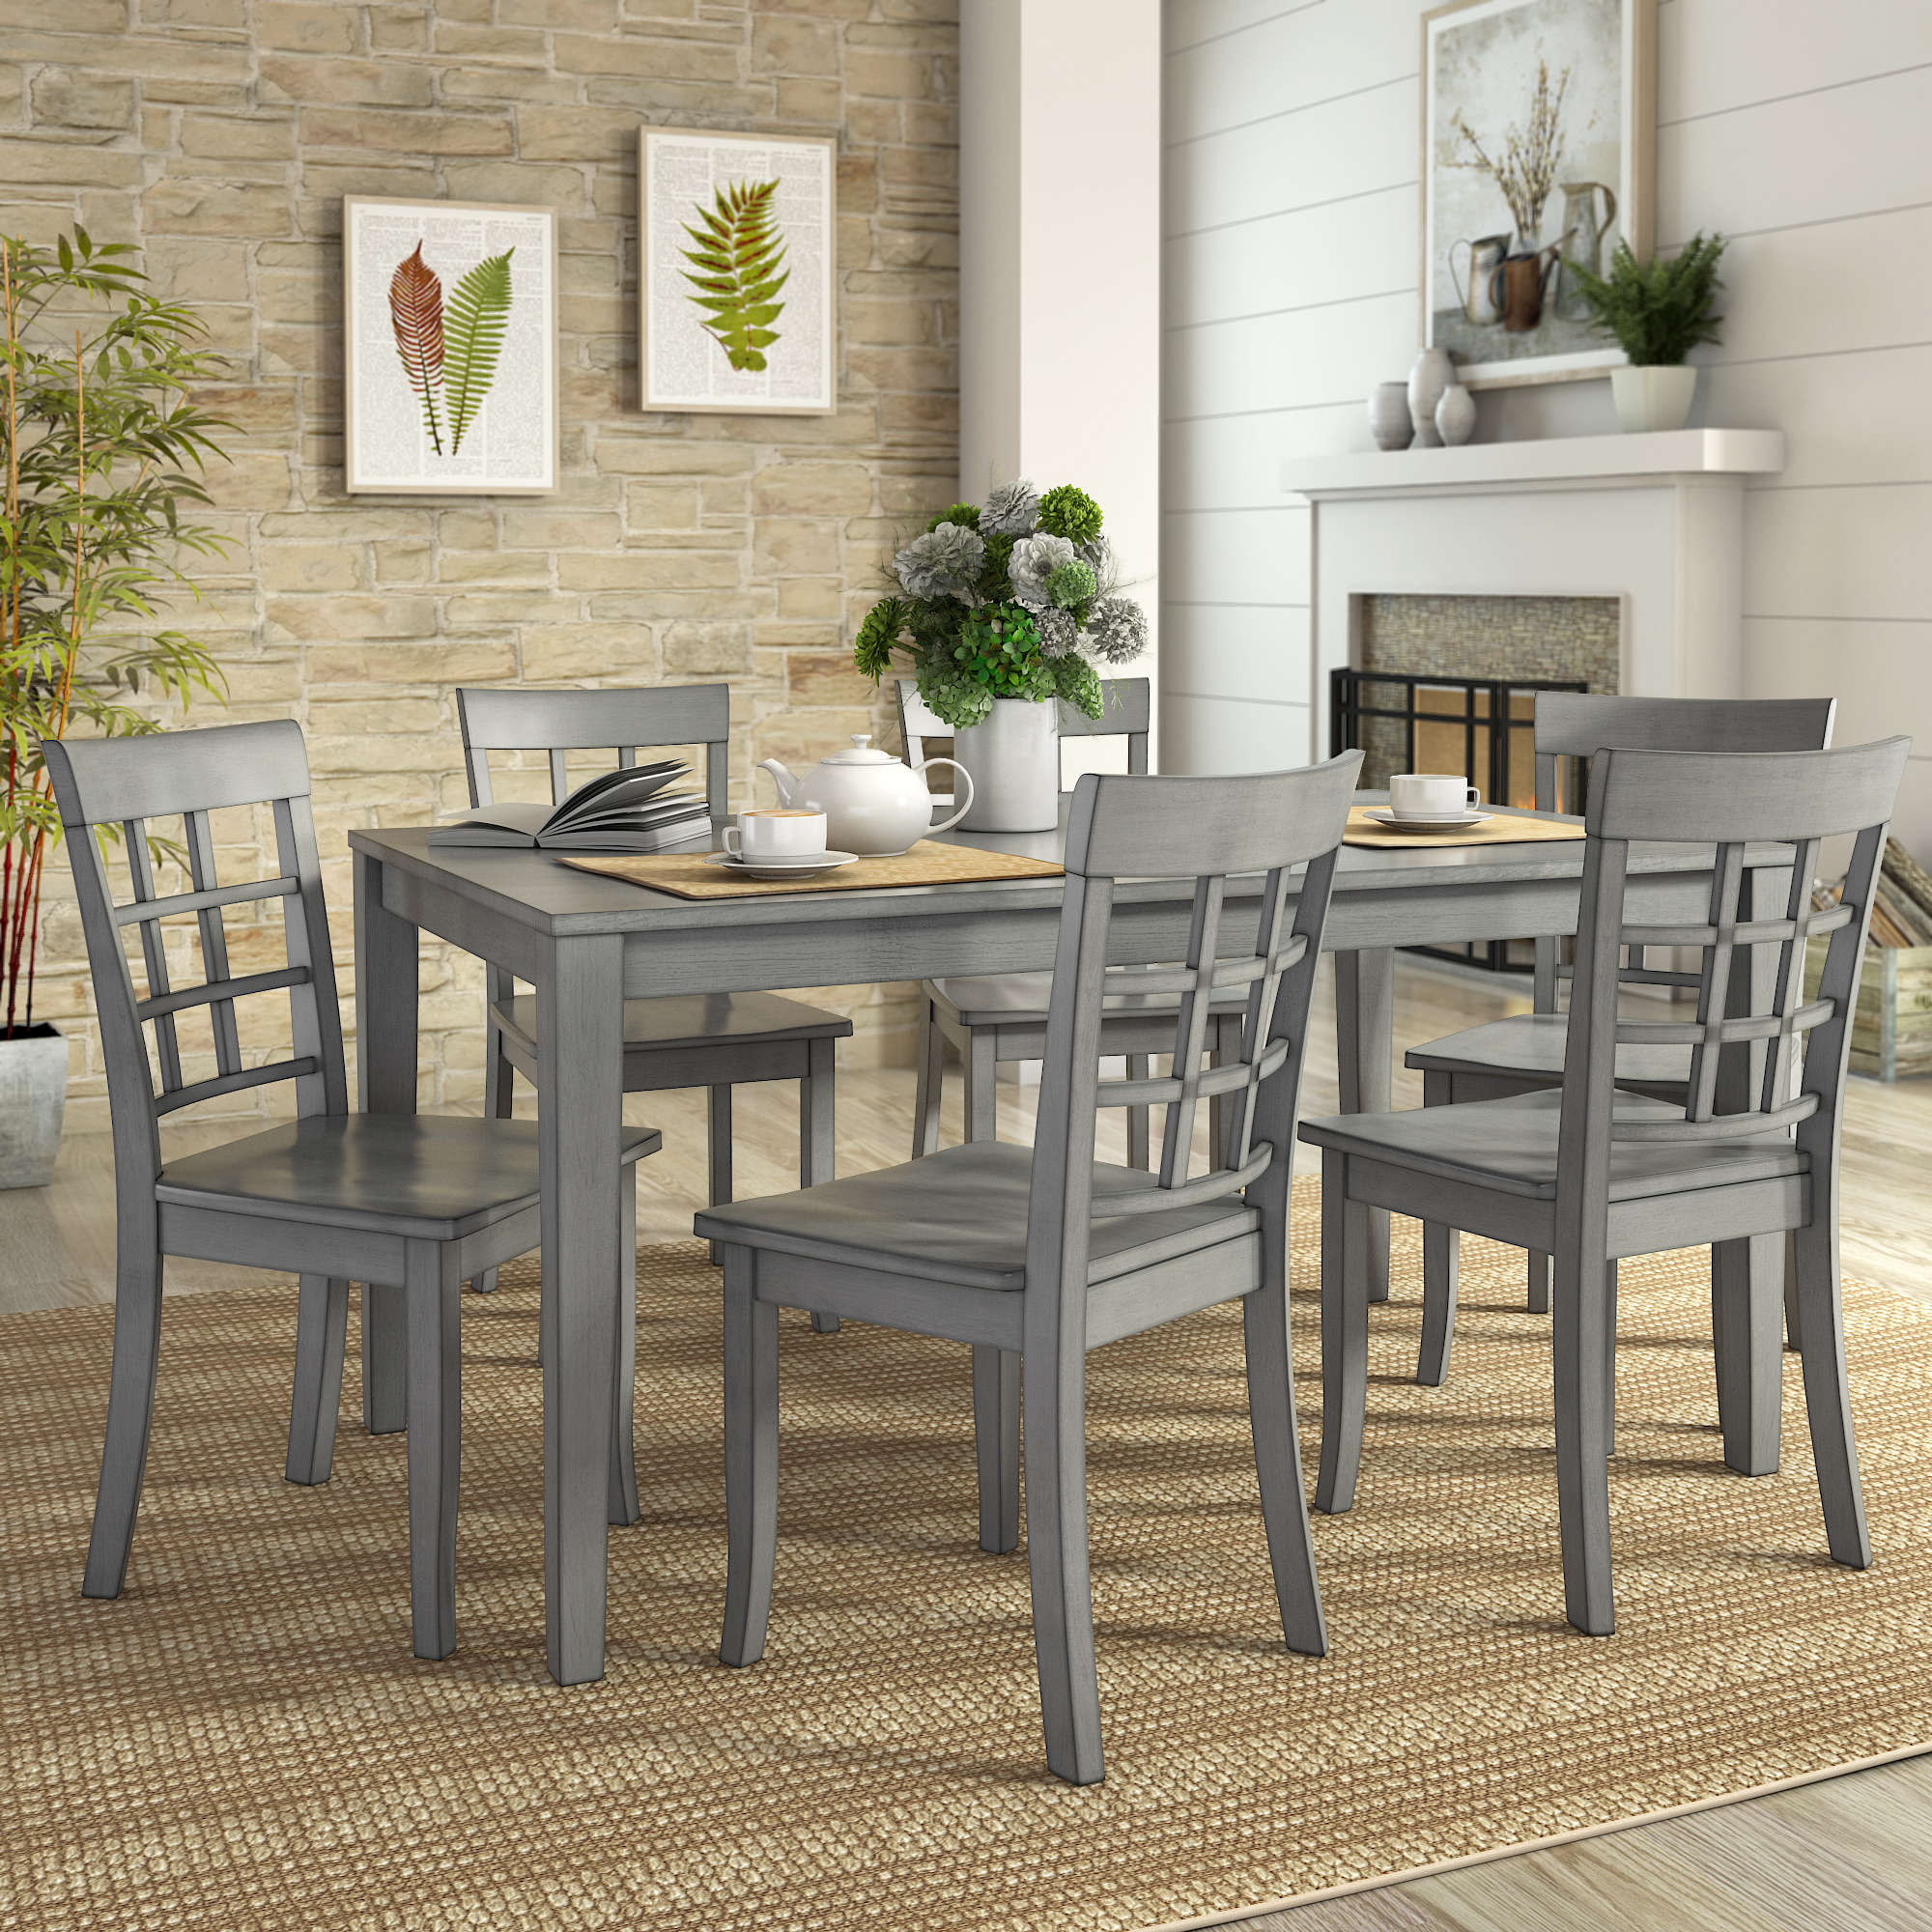 Lexington Large Dining Set with 6 Window Back Chairs